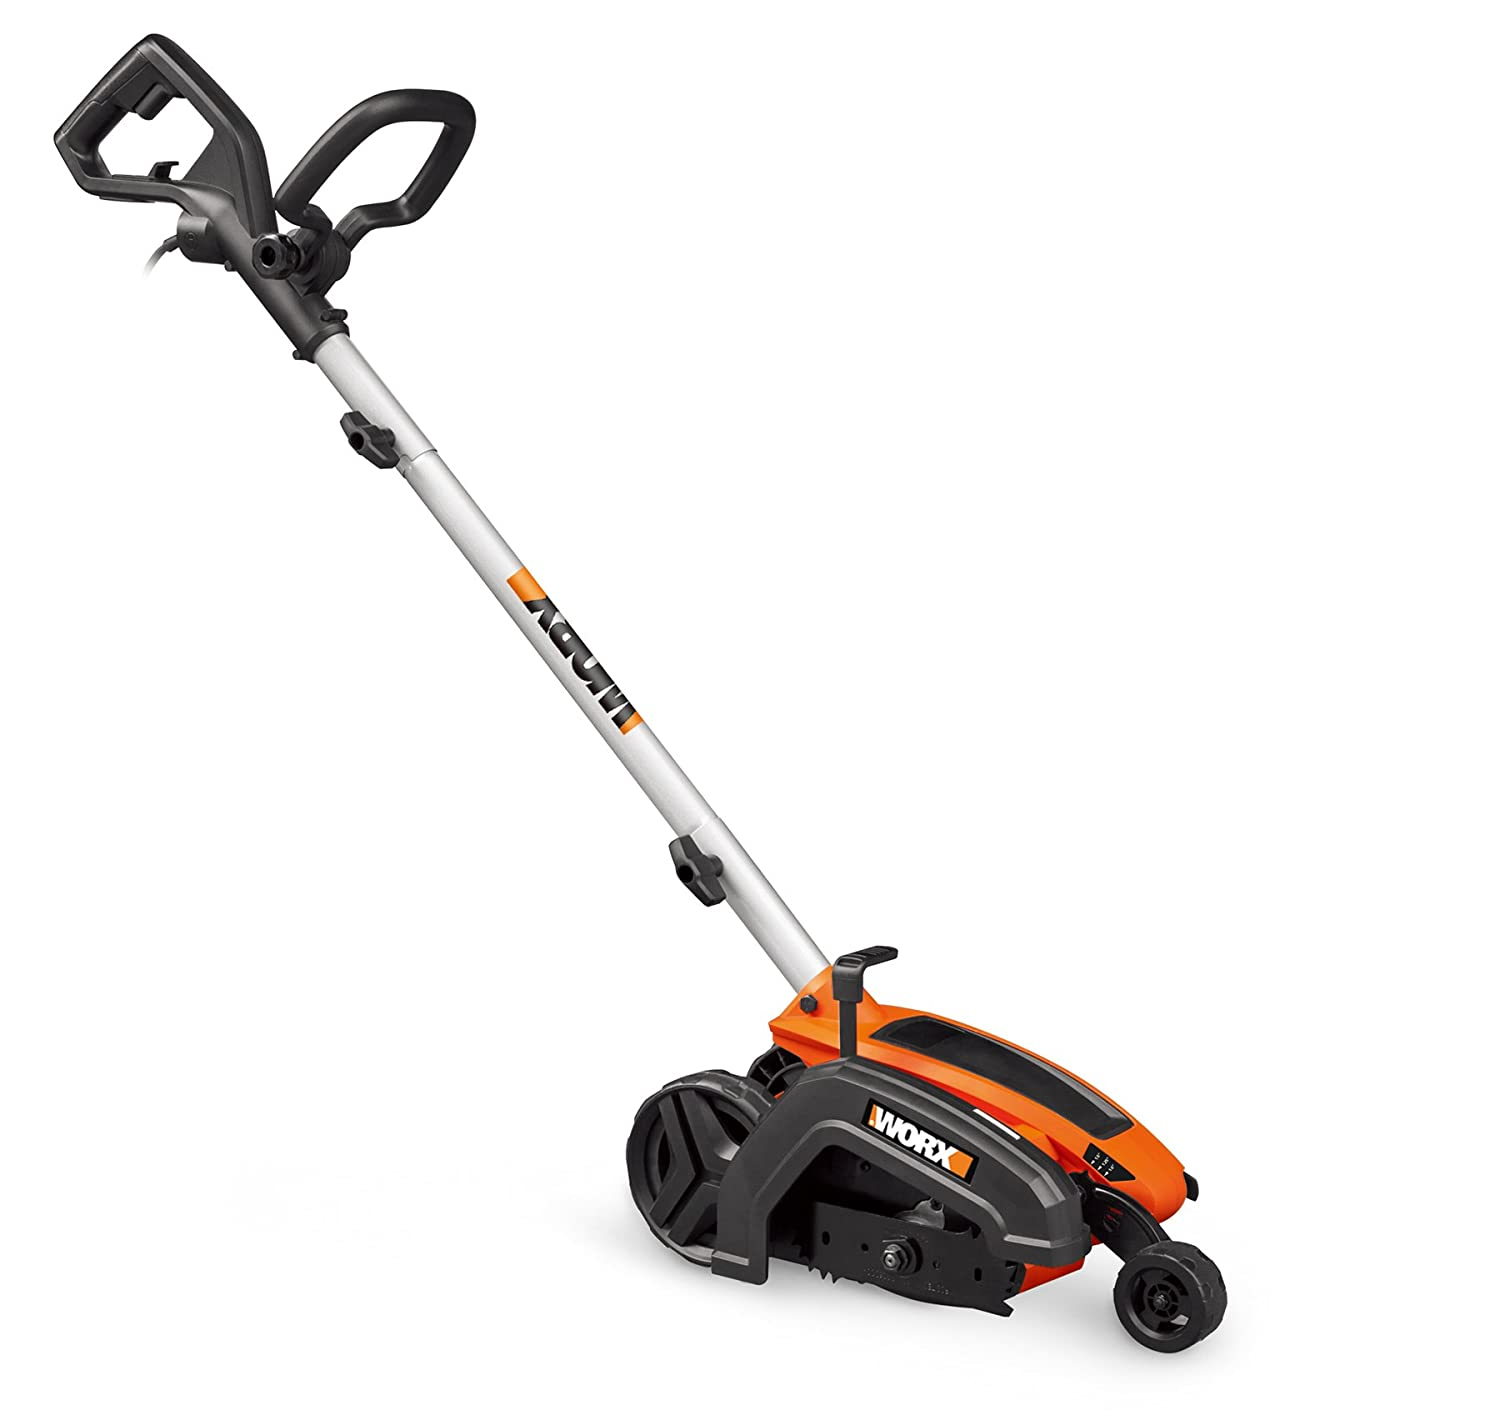 The Best Lawn Edger 7